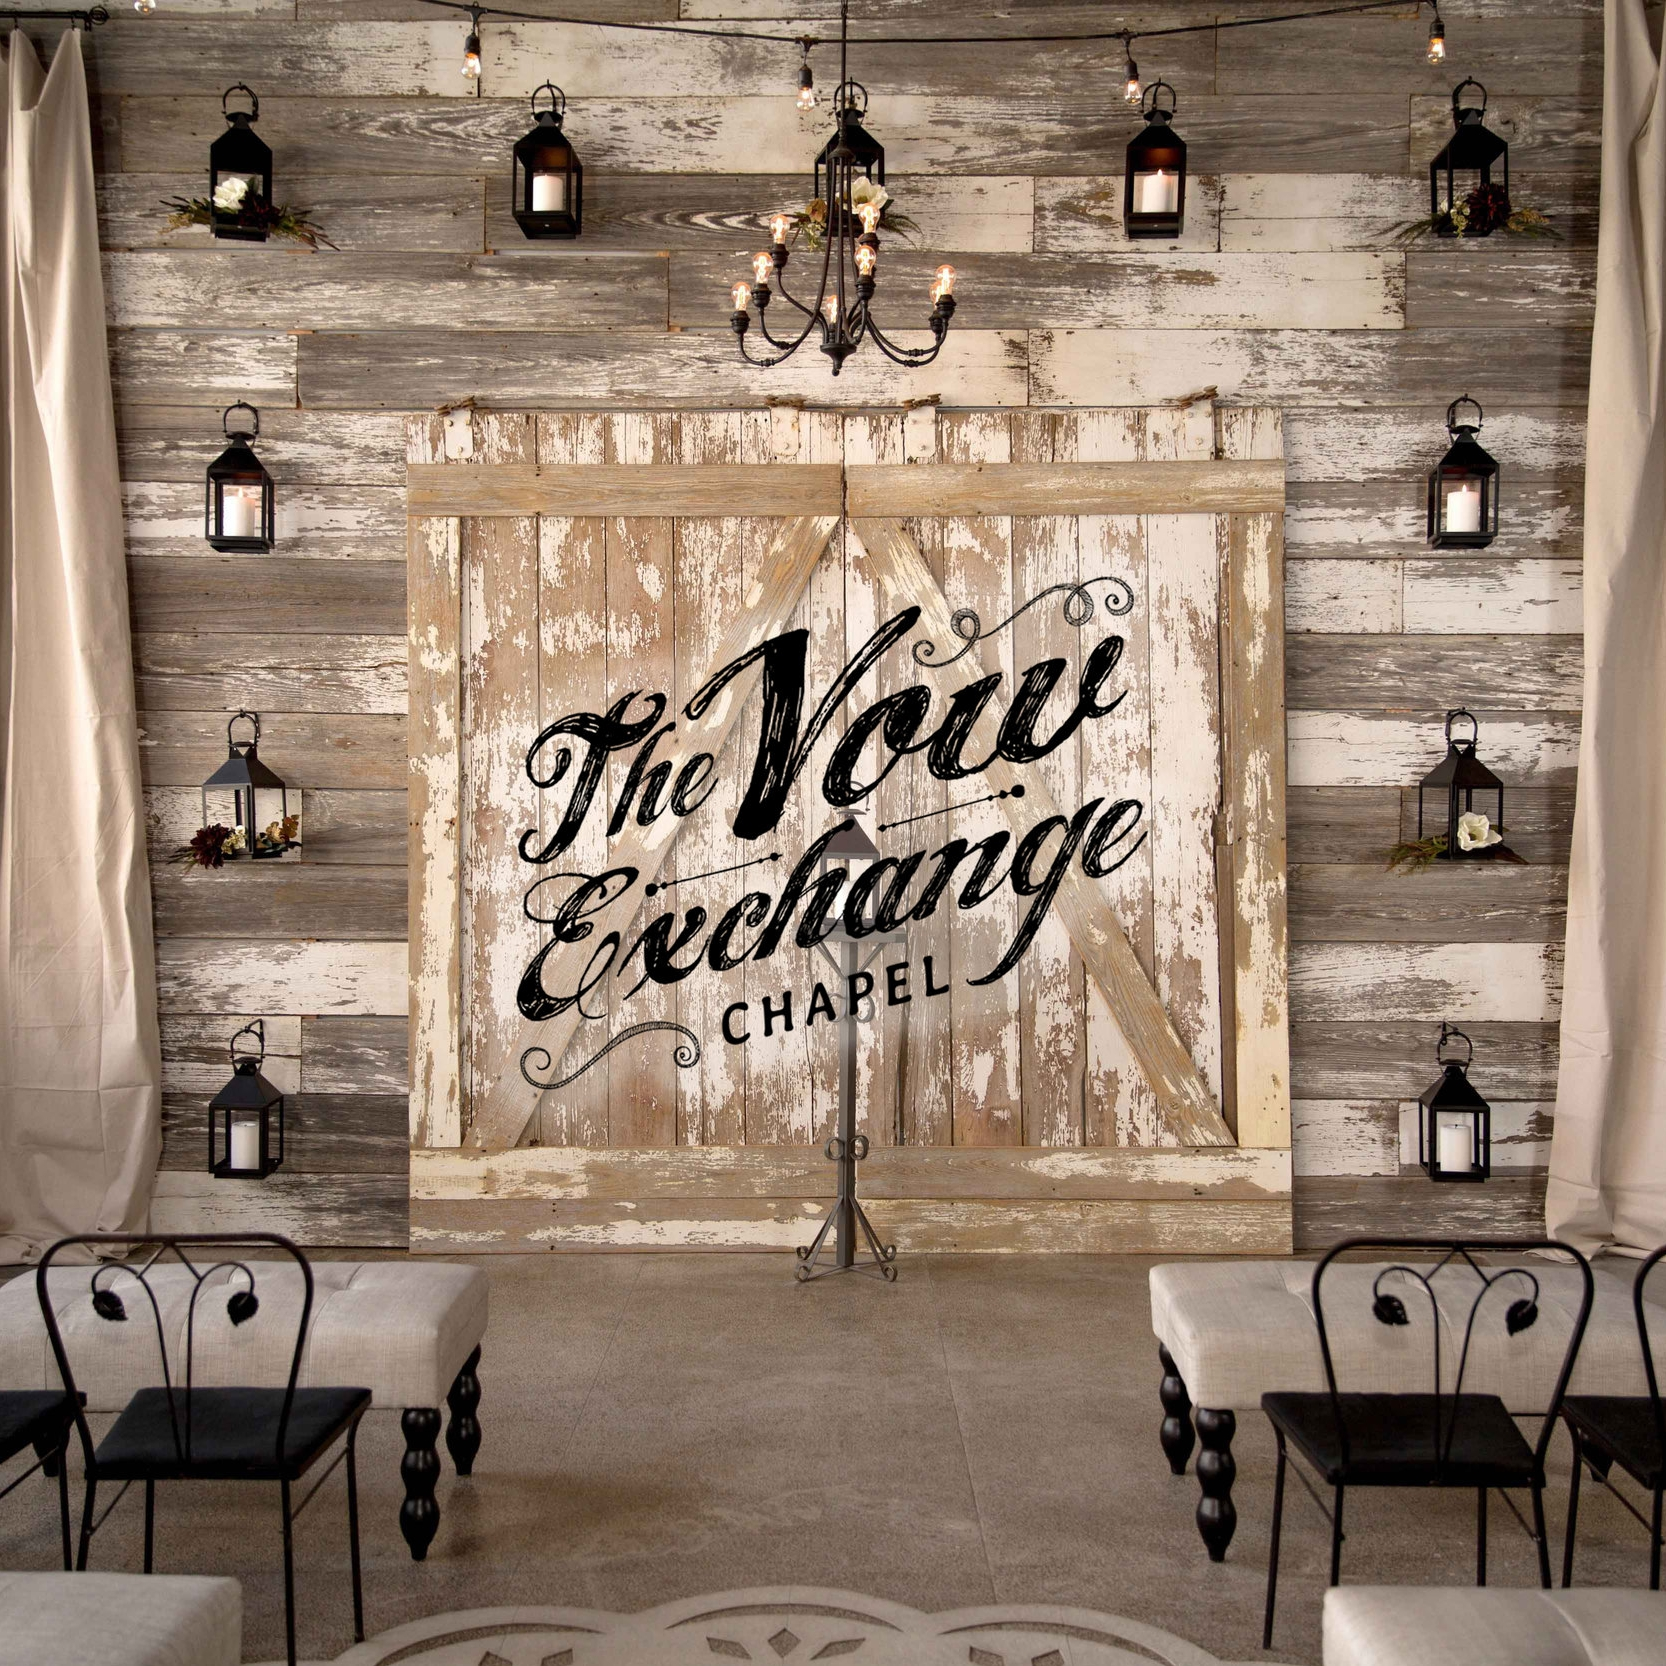 $1750 - THE VOW EXCHANGE